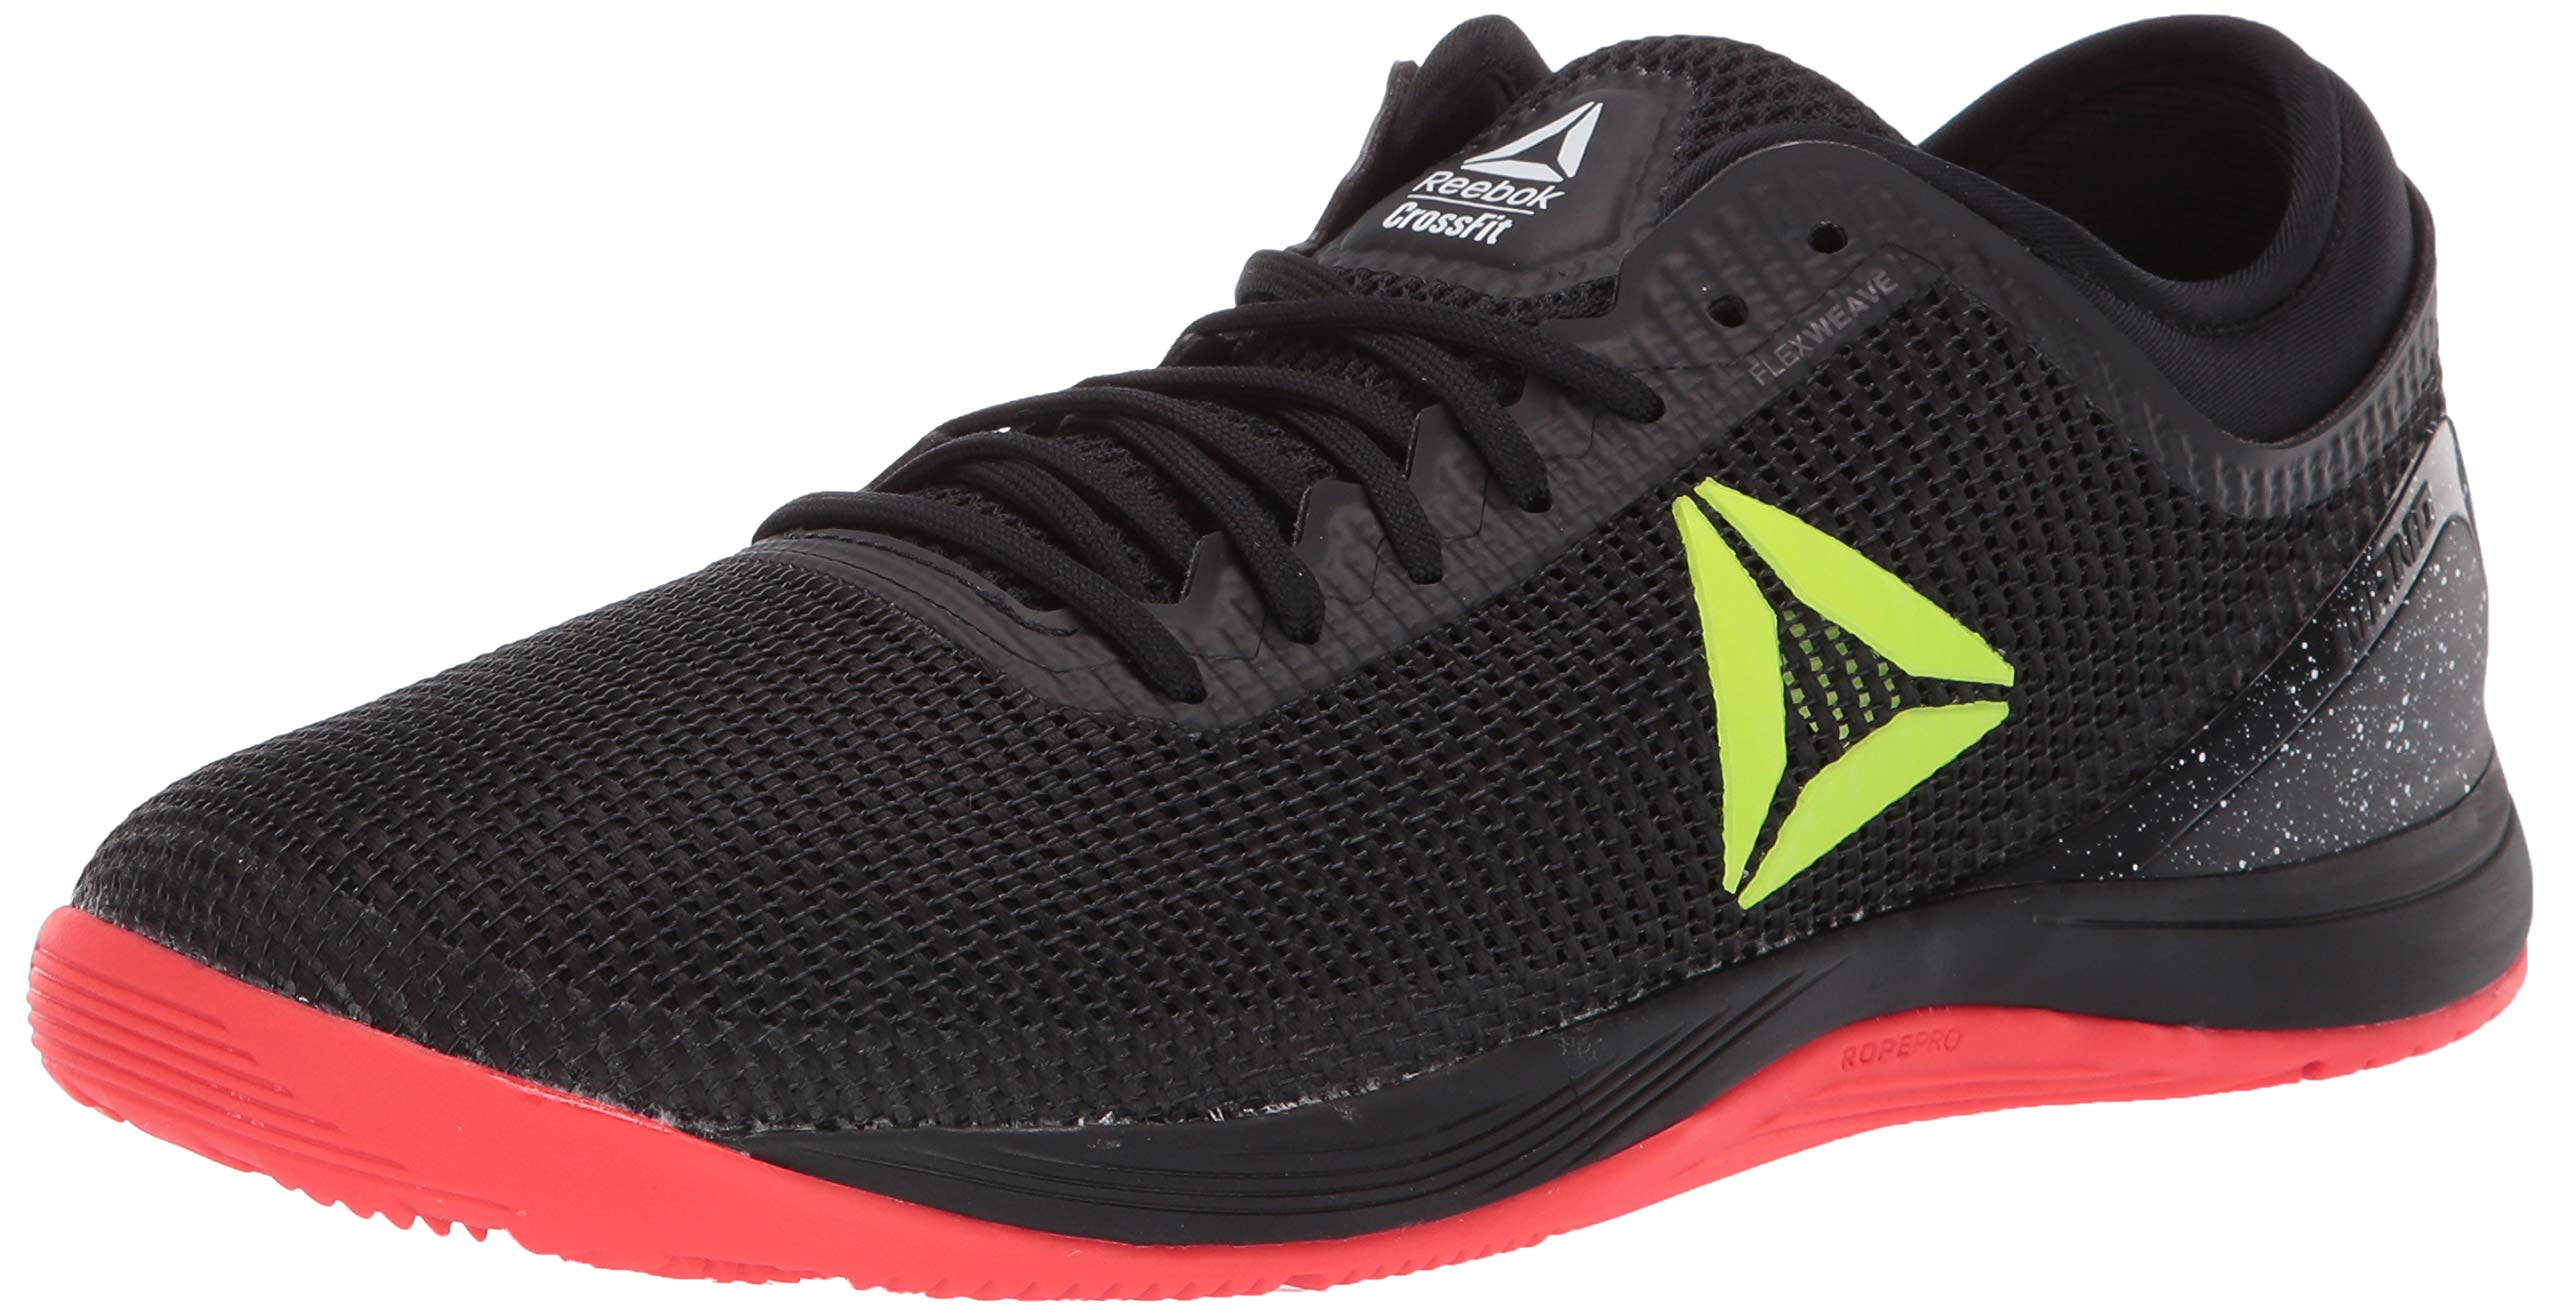 Reebok Men's CROSSFIT Nano 8.0 Flexweave Cross Trainer, Black/Neon Red/Neon Lime/White, 6.5 M US by Reebok (Image #1)